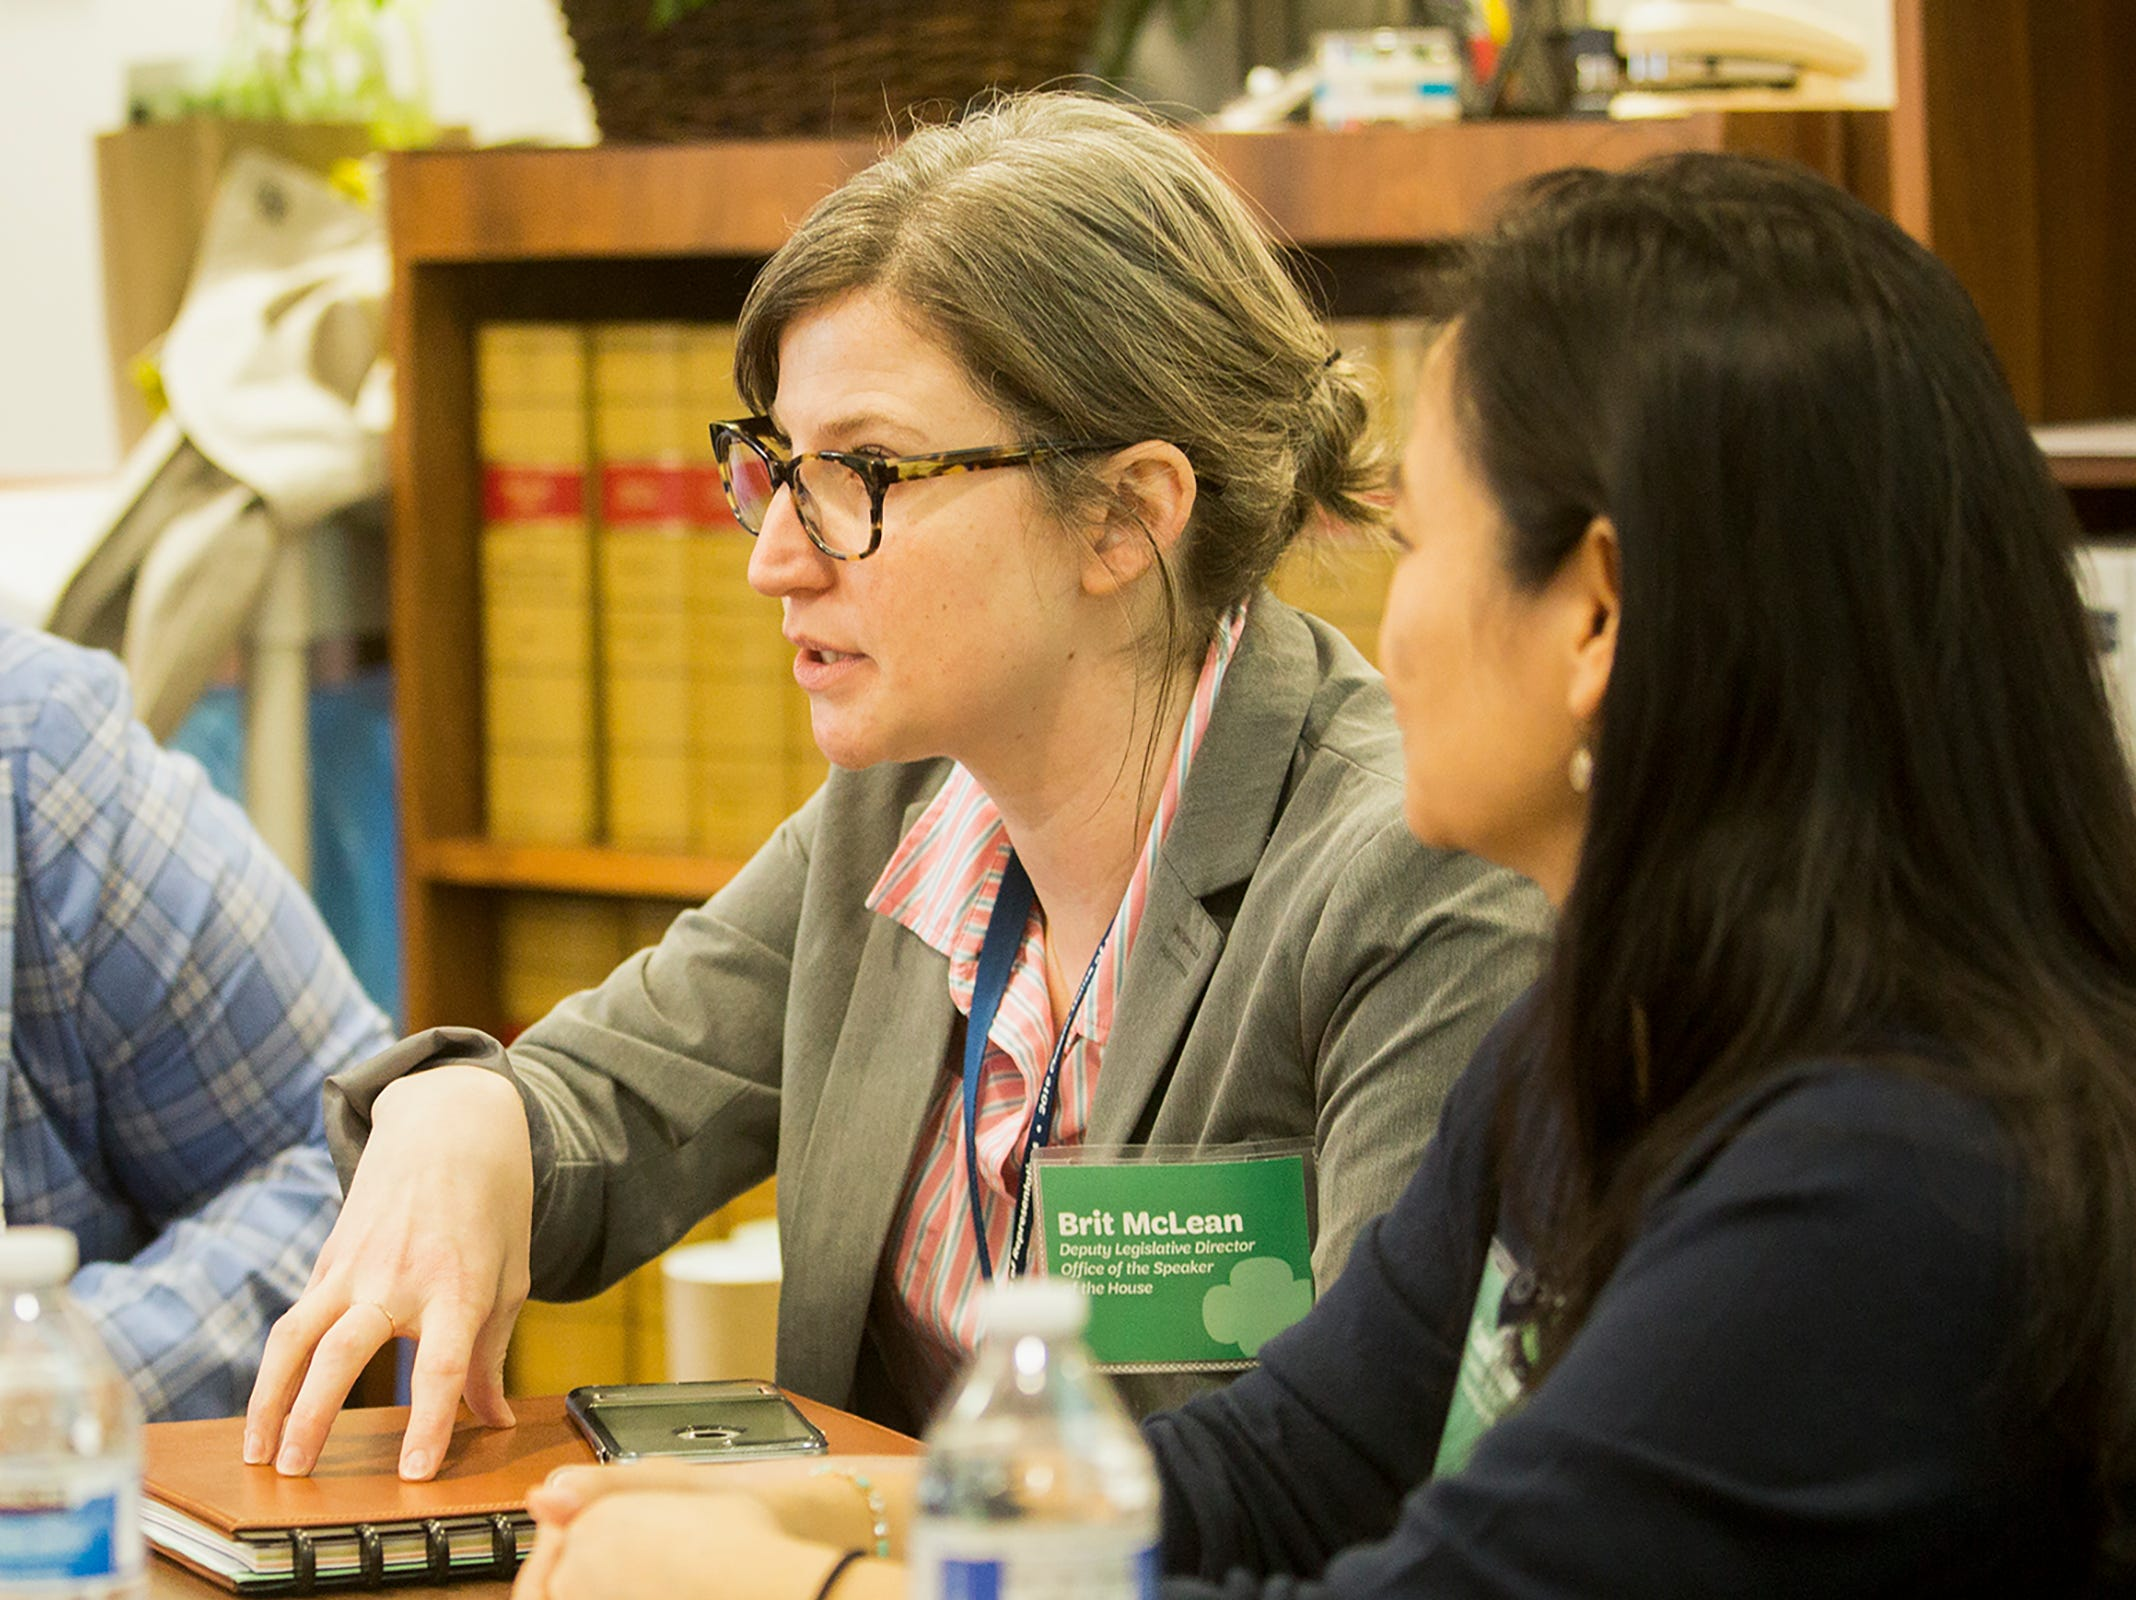 Deputy Legislative Director, Brit McLean, talks to Girl Scouts about some of the challenges working in government during Girl Scout Leadership Day at the Oregon State Capitol in Salem March 12, 2019.